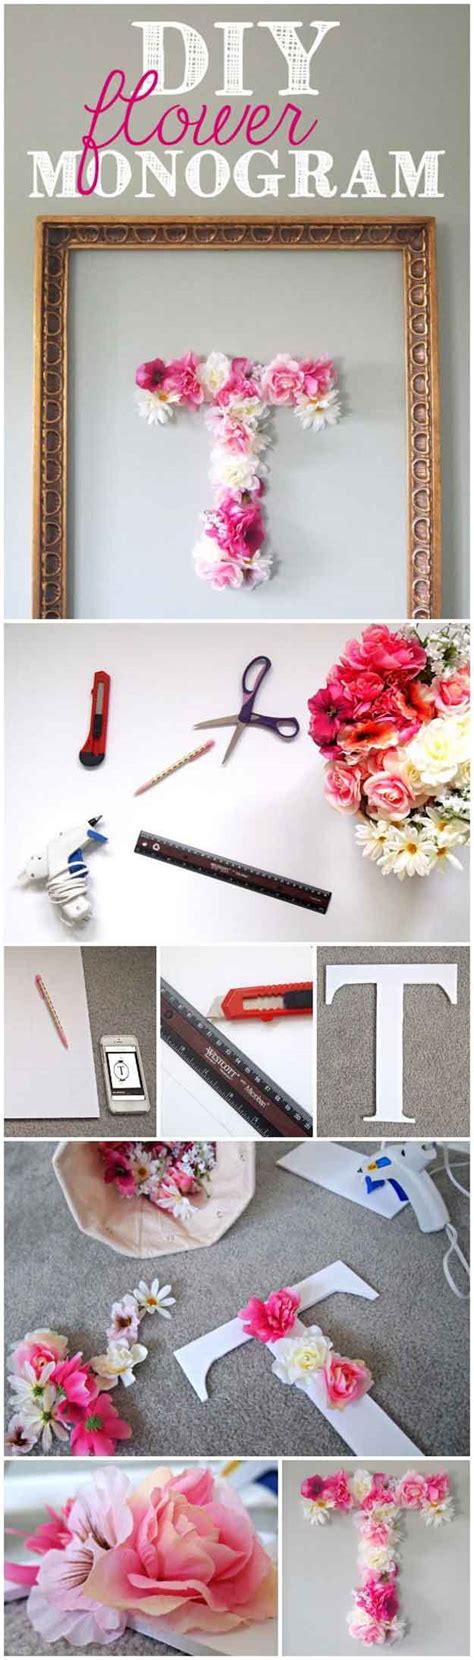 diy bedroom decorations diy projects for bedroom diy ready